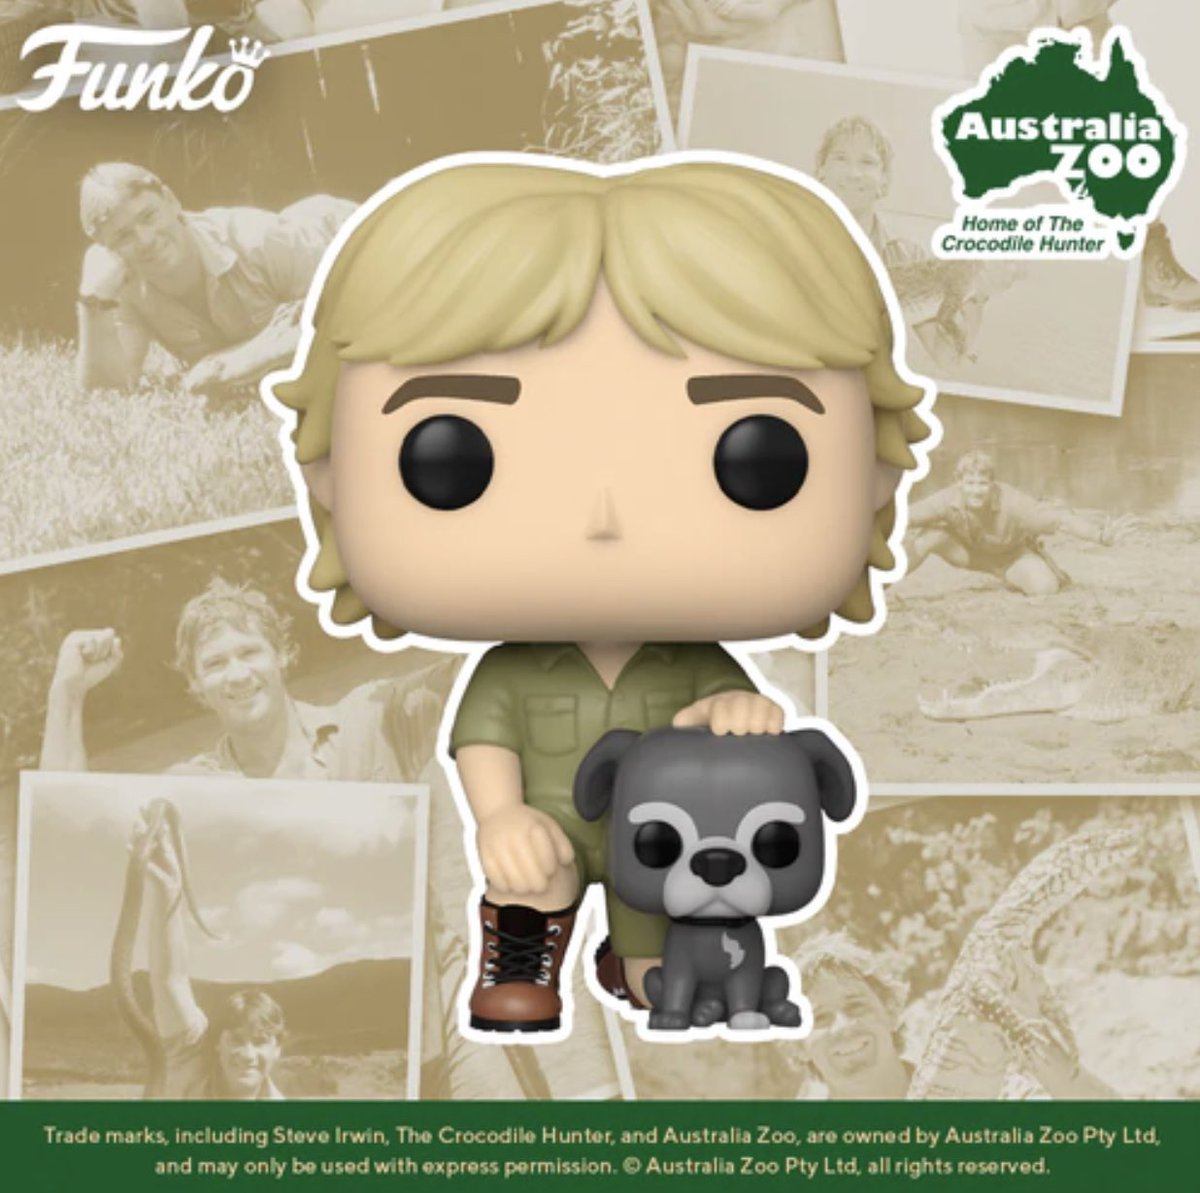 Coming Soon: Steve Irwin with Sui! Preorder Now! #Funko   .